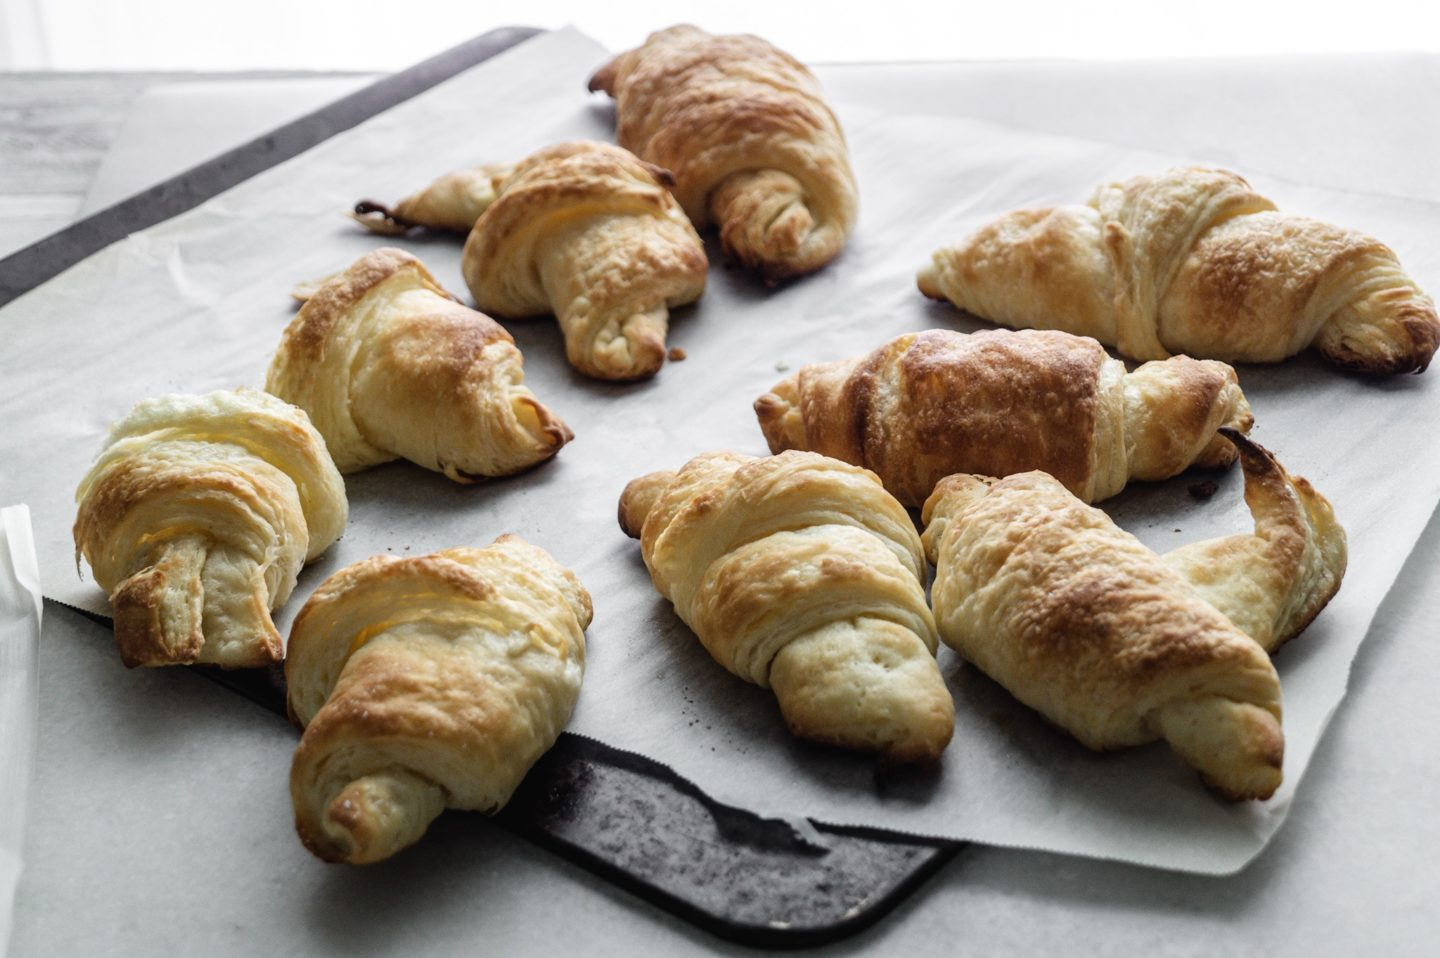 Don't worry about perfection, with croissants its all about the journey.